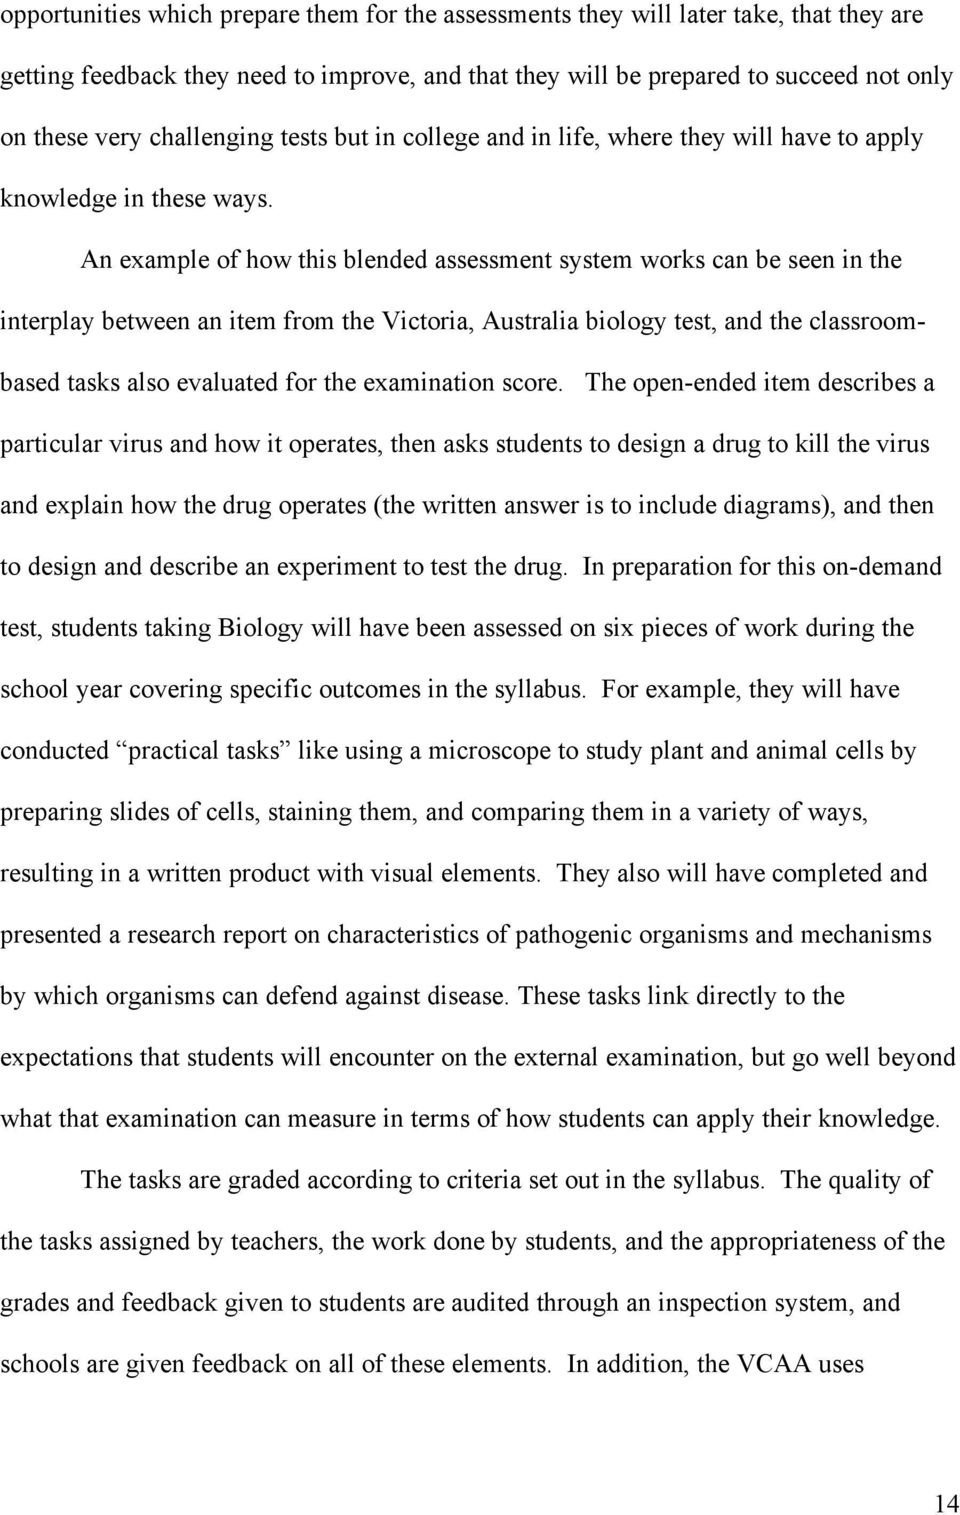 An example of how this blended assessment system works can be seen in the interplay between an item from the Victoria, Australia biology test, and the classroombased tasks also evaluated for the